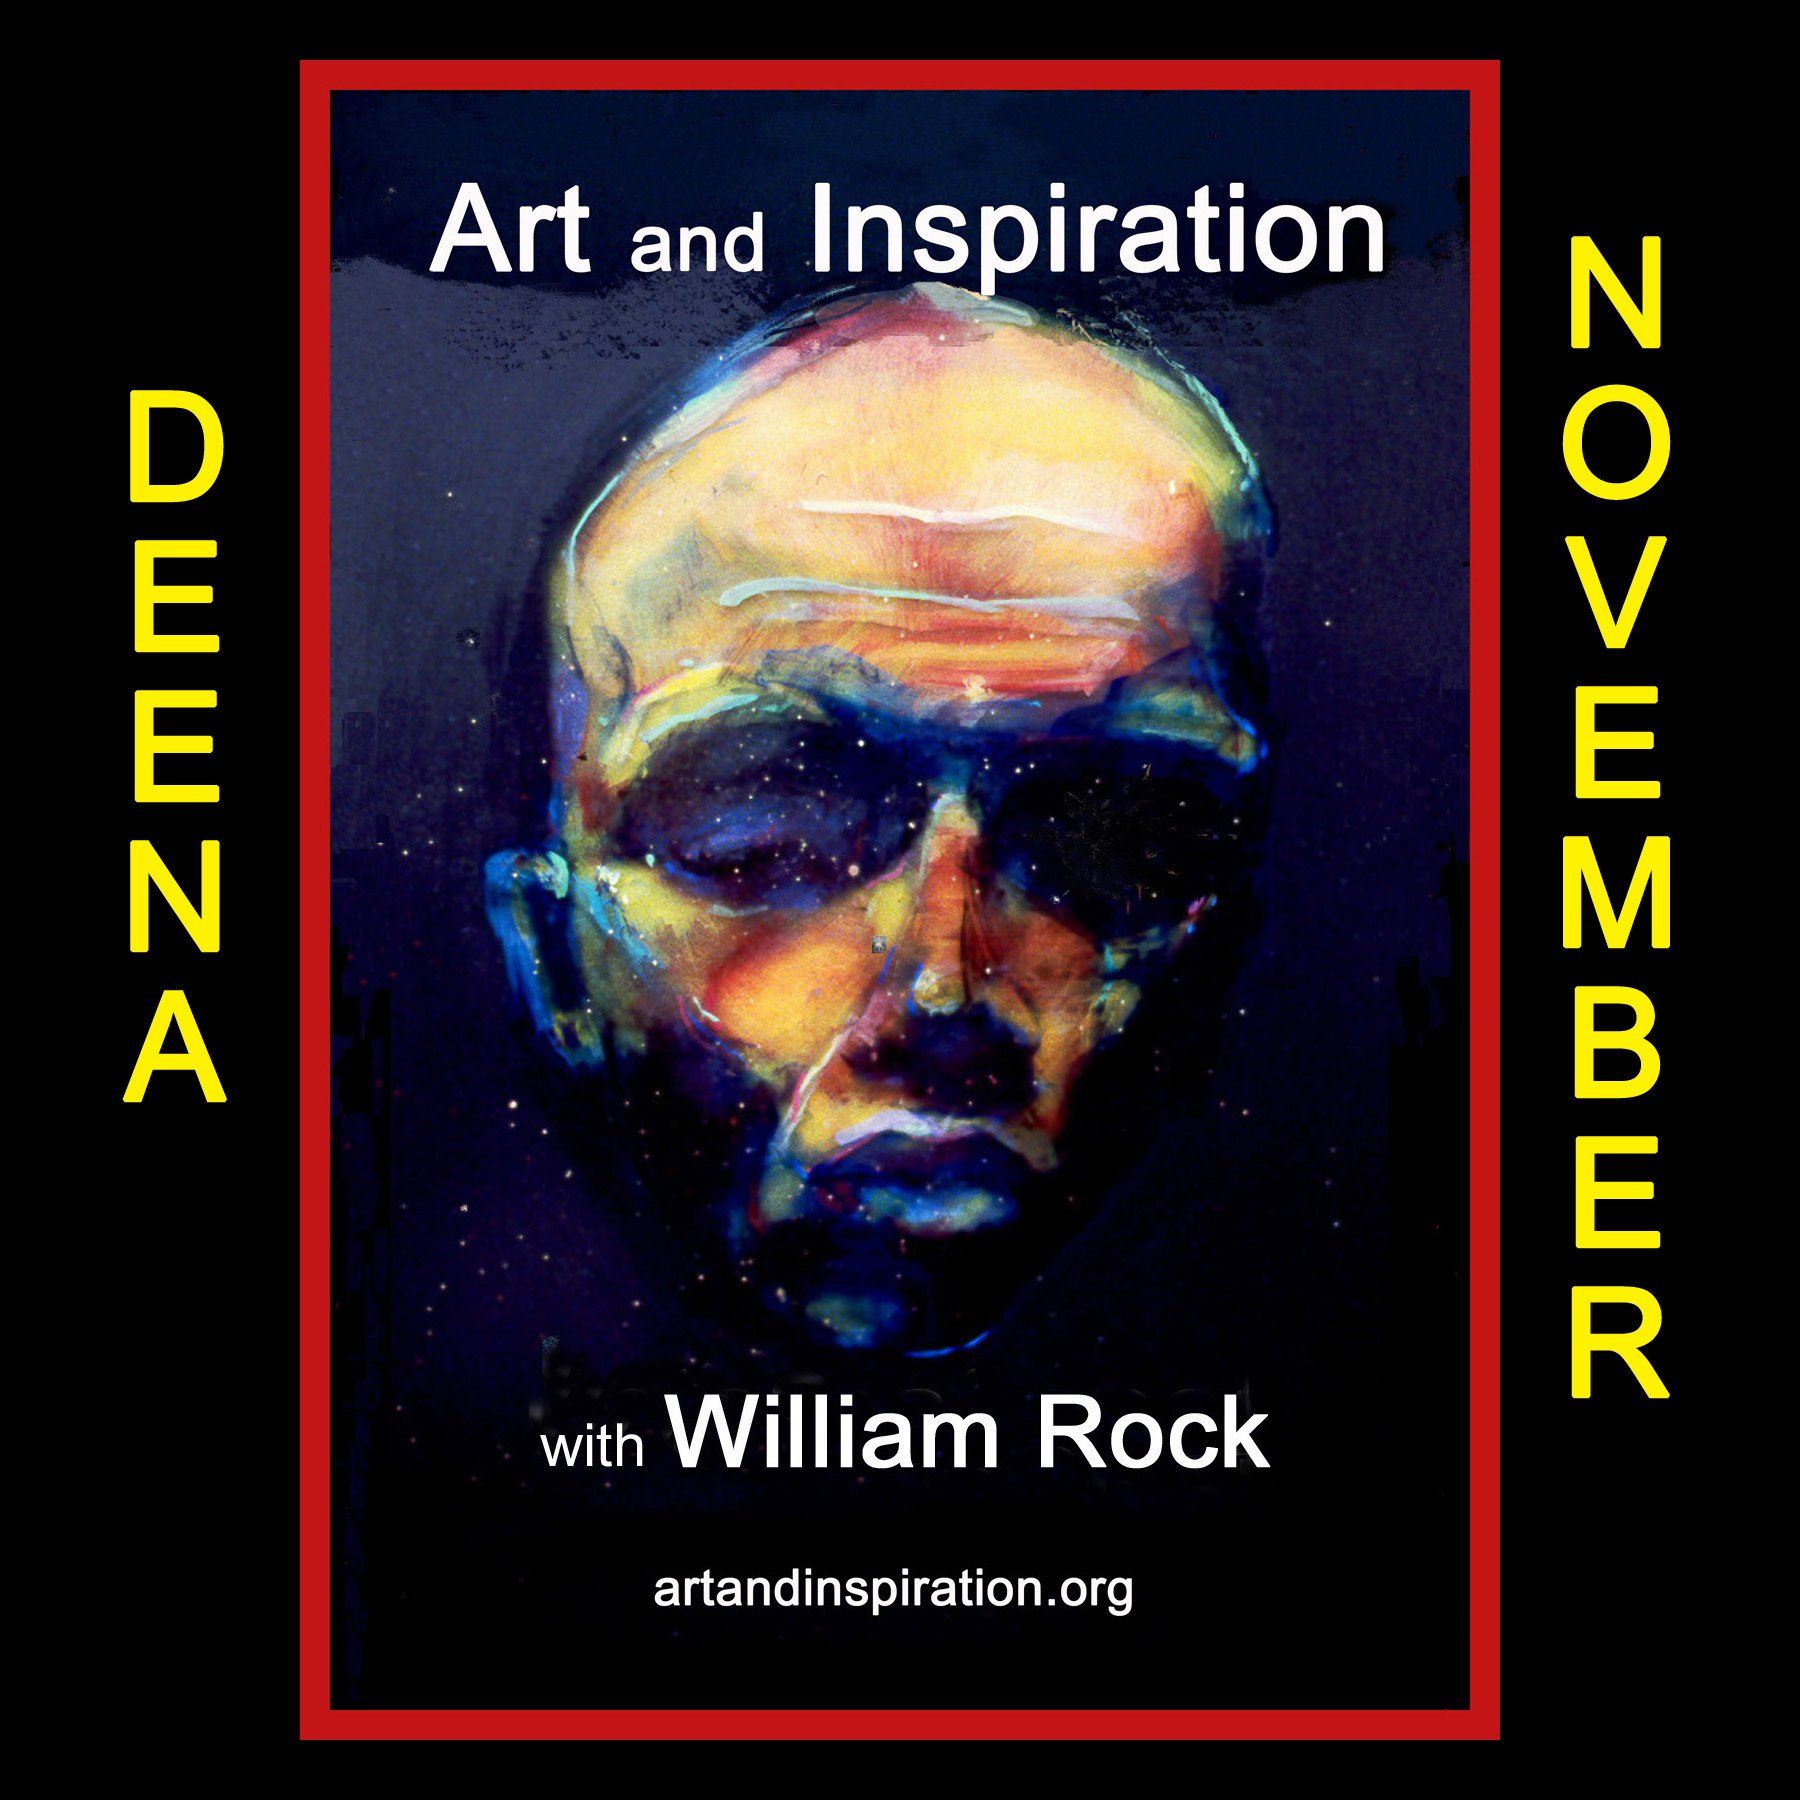 Deena November on Art and Inspiration with William Rock